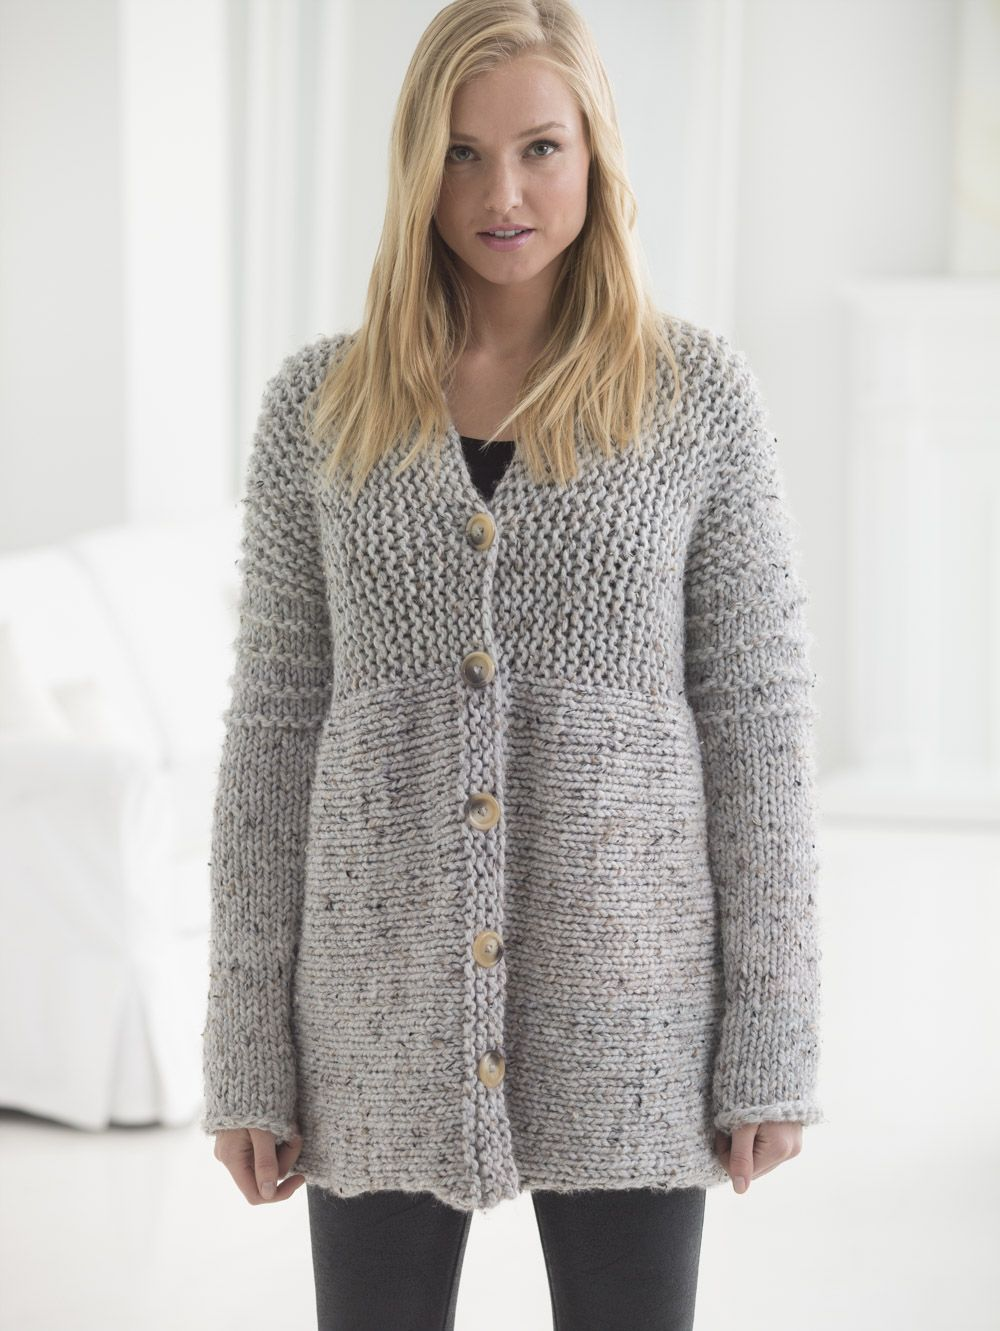 Knitting Cardigan Design : Your first sweater the reading room cardigan free